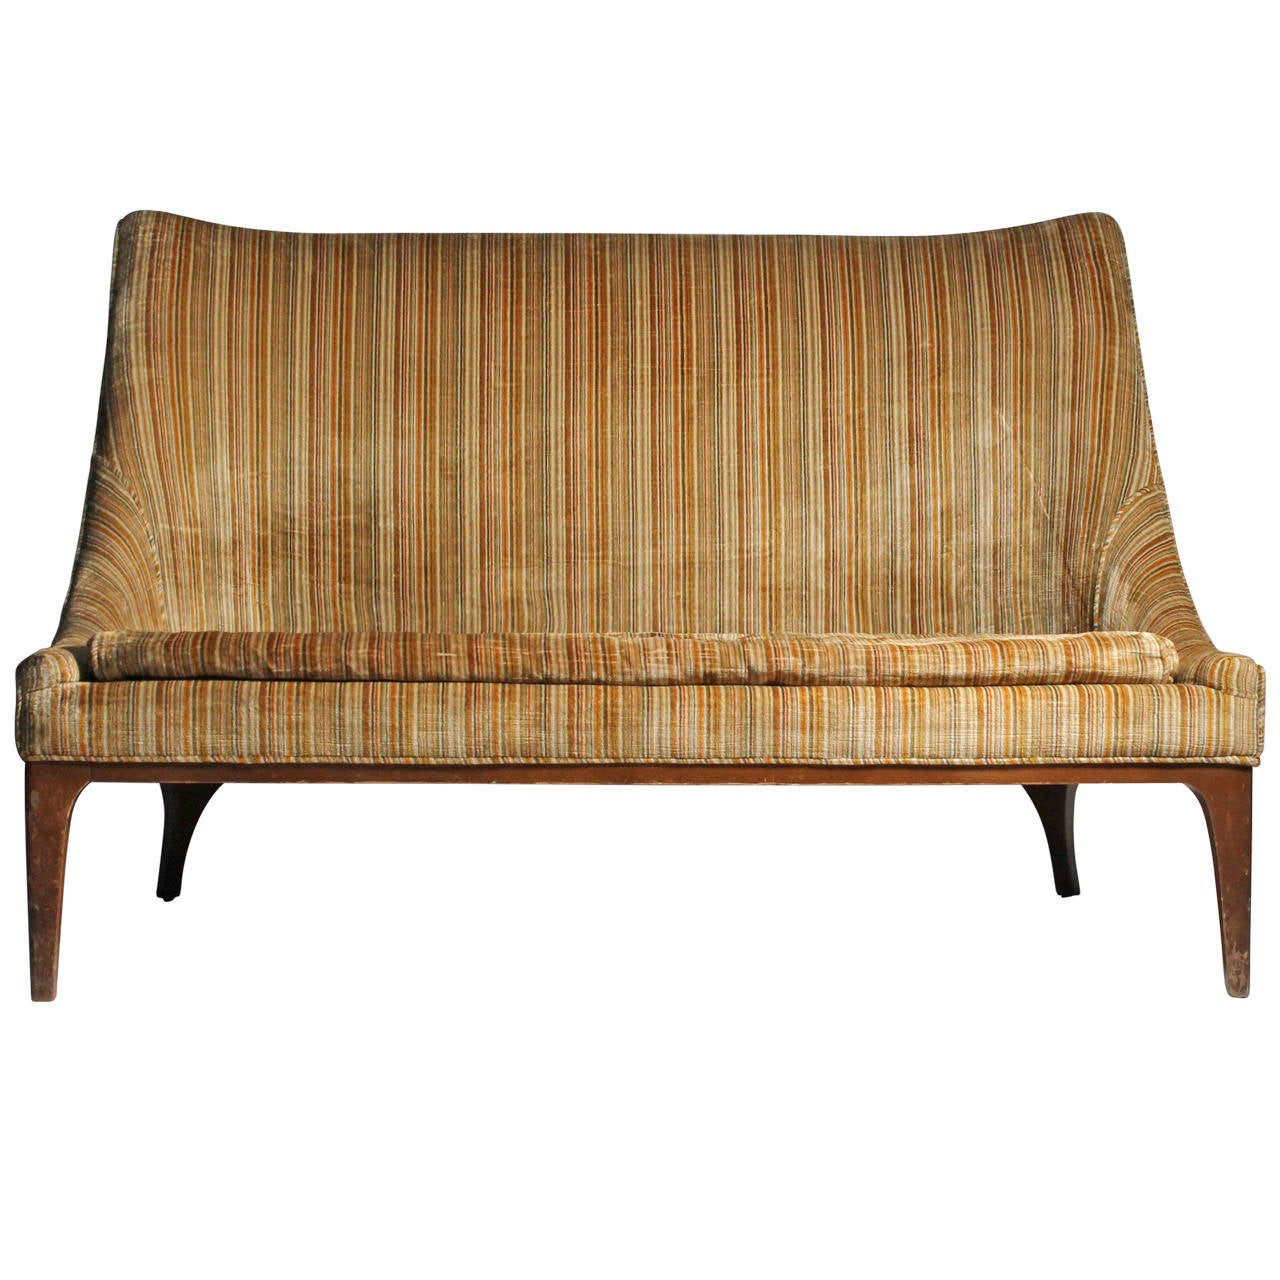 lawrence peabody furniture chairs sofas tables more 29 for designer lawrence peabody vintage loveseat sofa